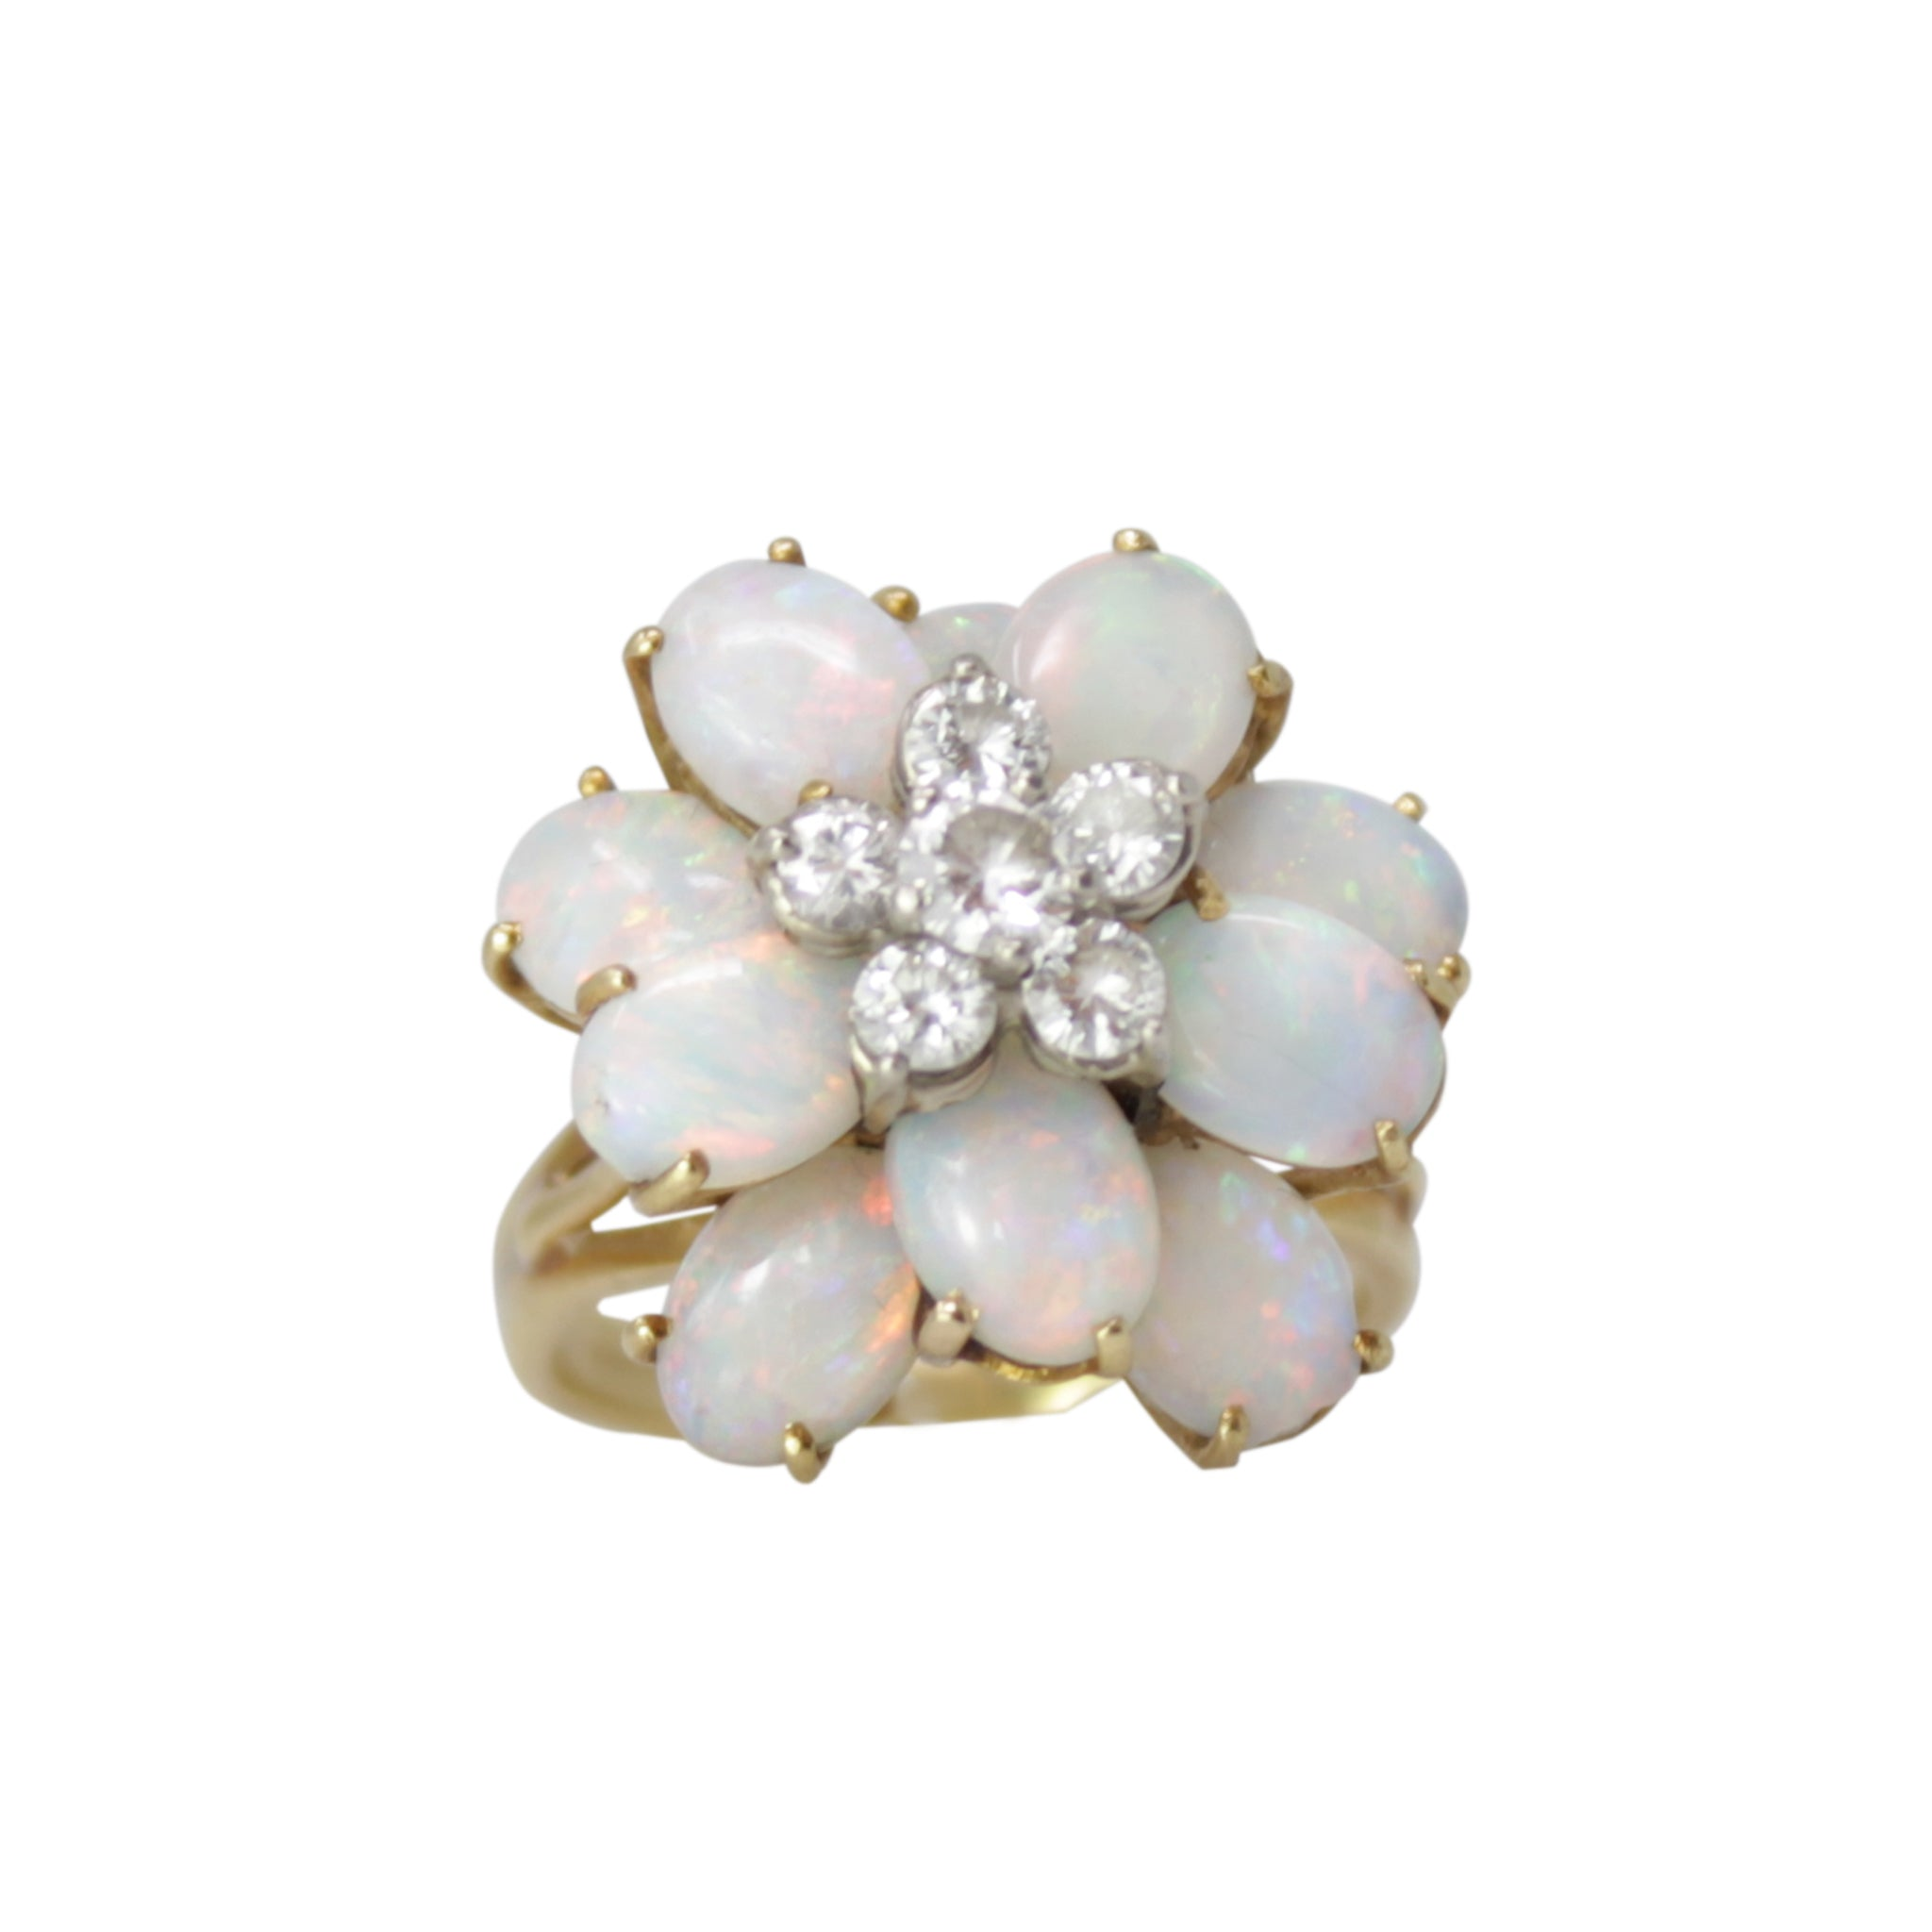 Opal Diamond Flower Ring - 18k Yellow Gold Diamond and Opal Vintage Ring